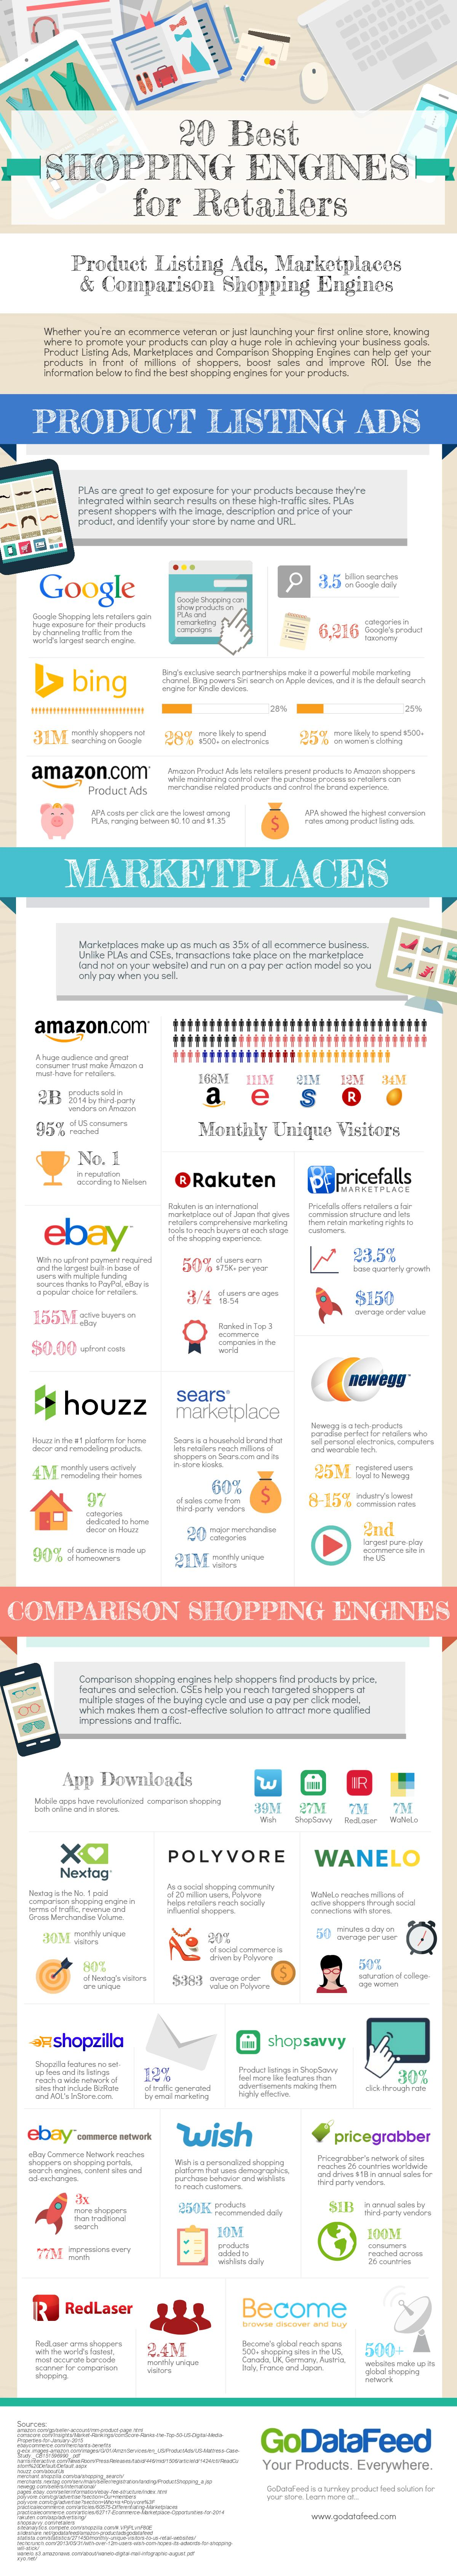 20 Best Shopping Engines for Retailers [Infographic]